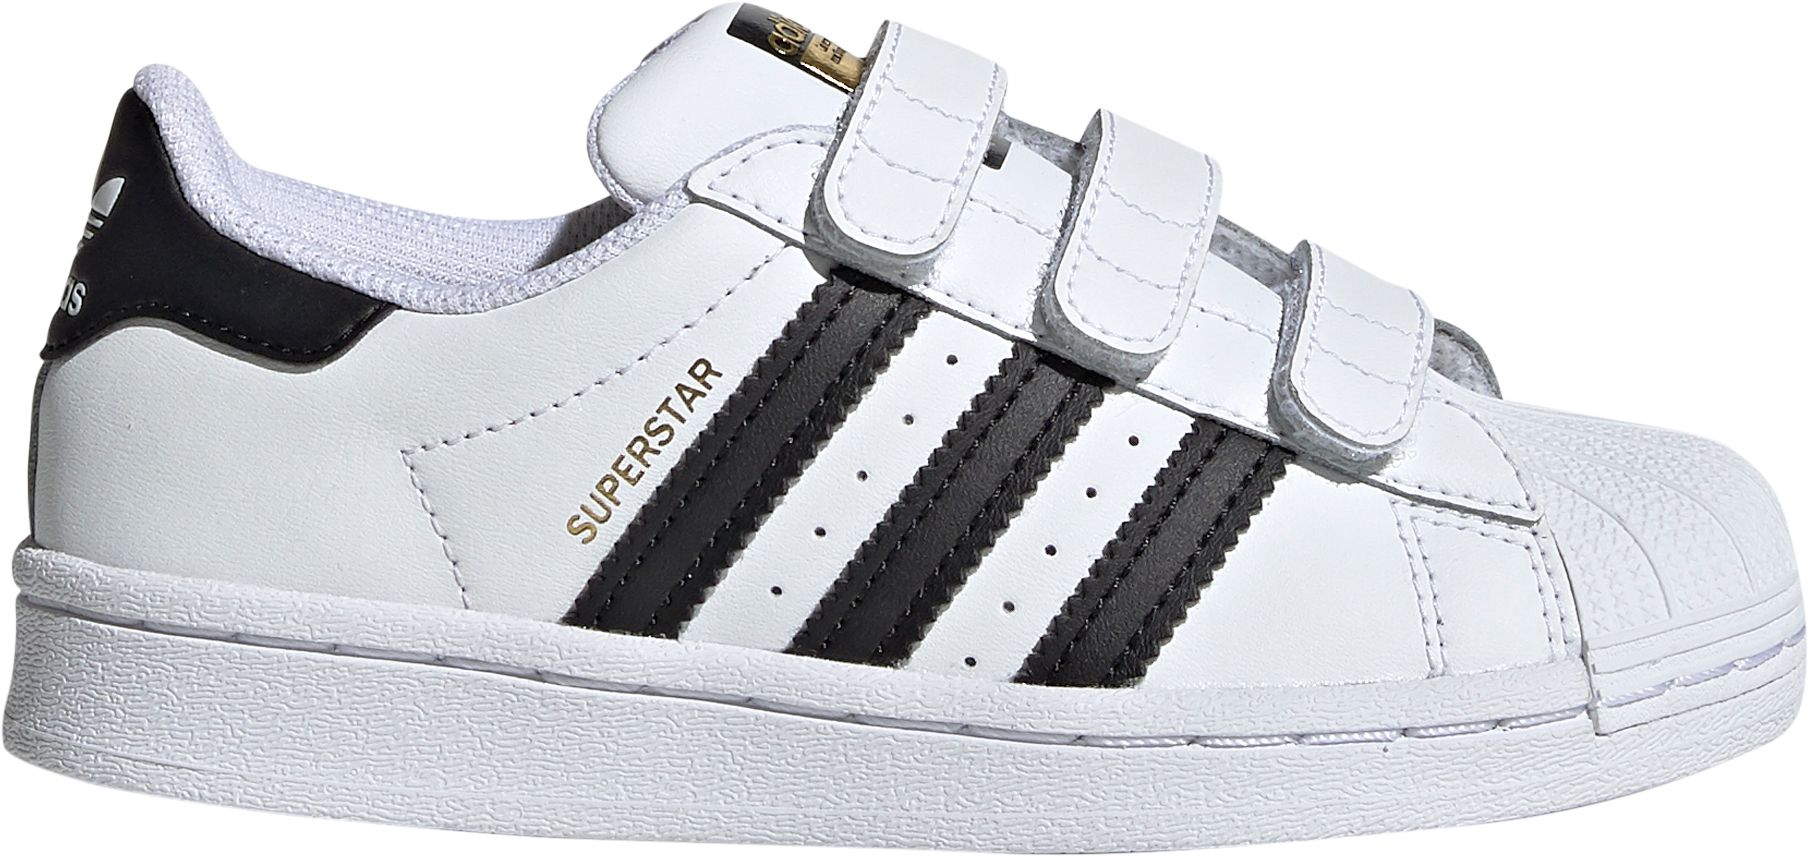 adidas Originals Kids' Preschool Superstar Shoes. 0:00. 0:00 / 0:00.  noImageFound ???